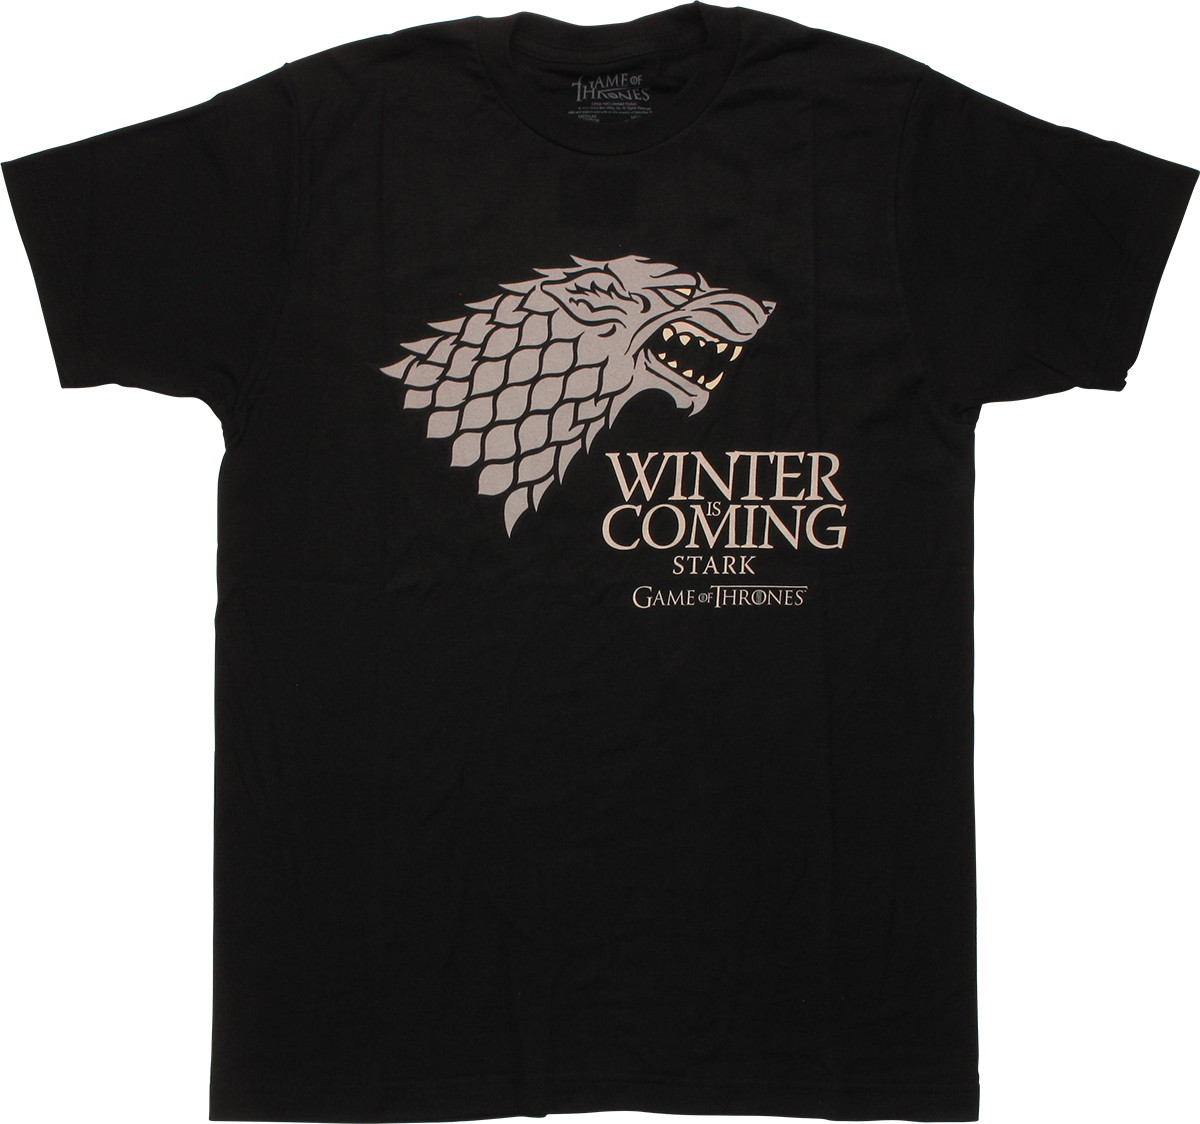 game of thrones winter is coming stark t shirt. Black Bedroom Furniture Sets. Home Design Ideas